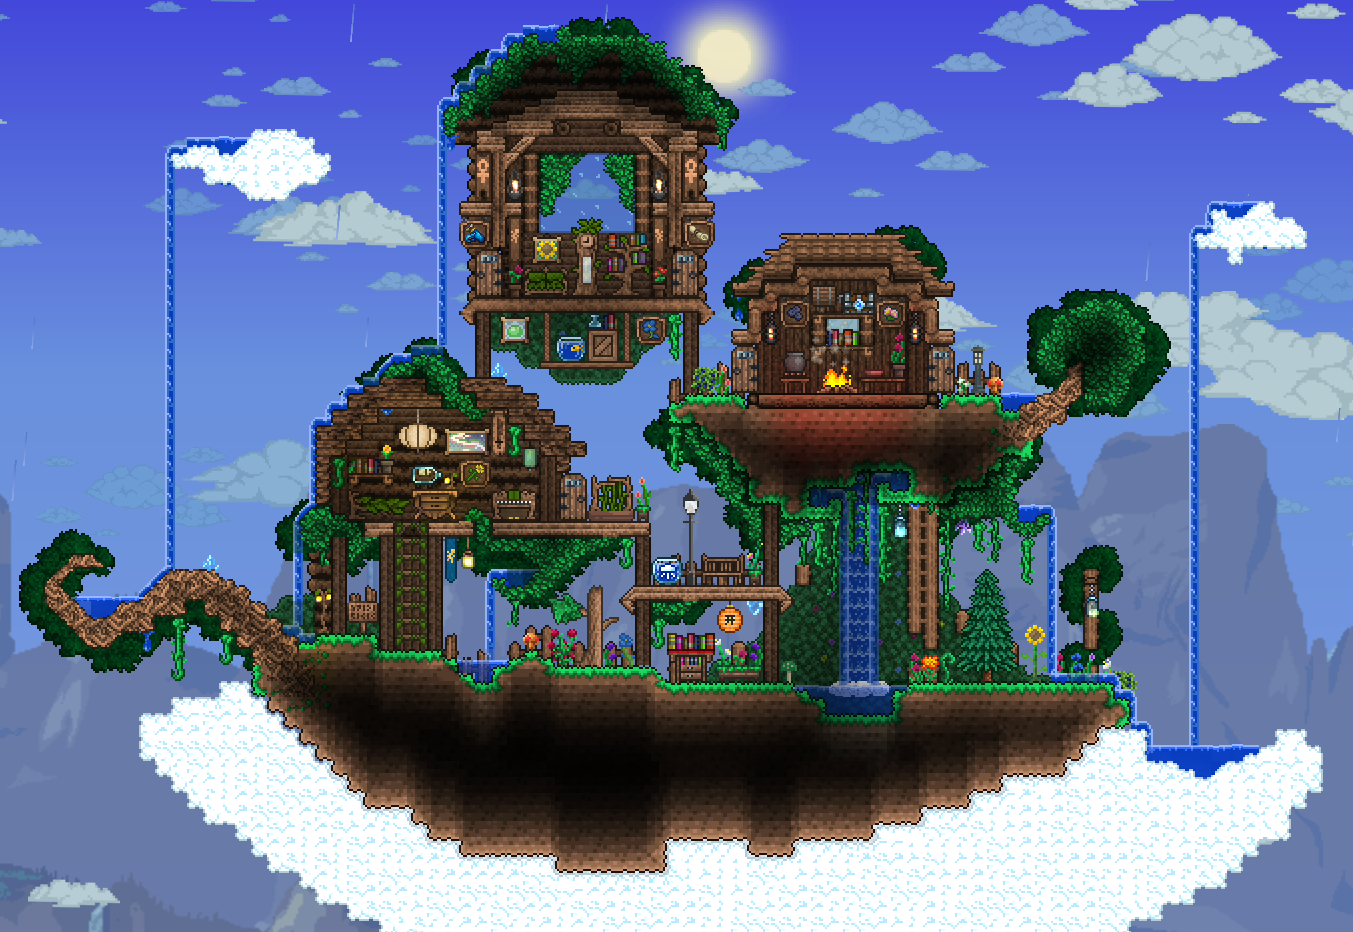 Rainy Floating Island